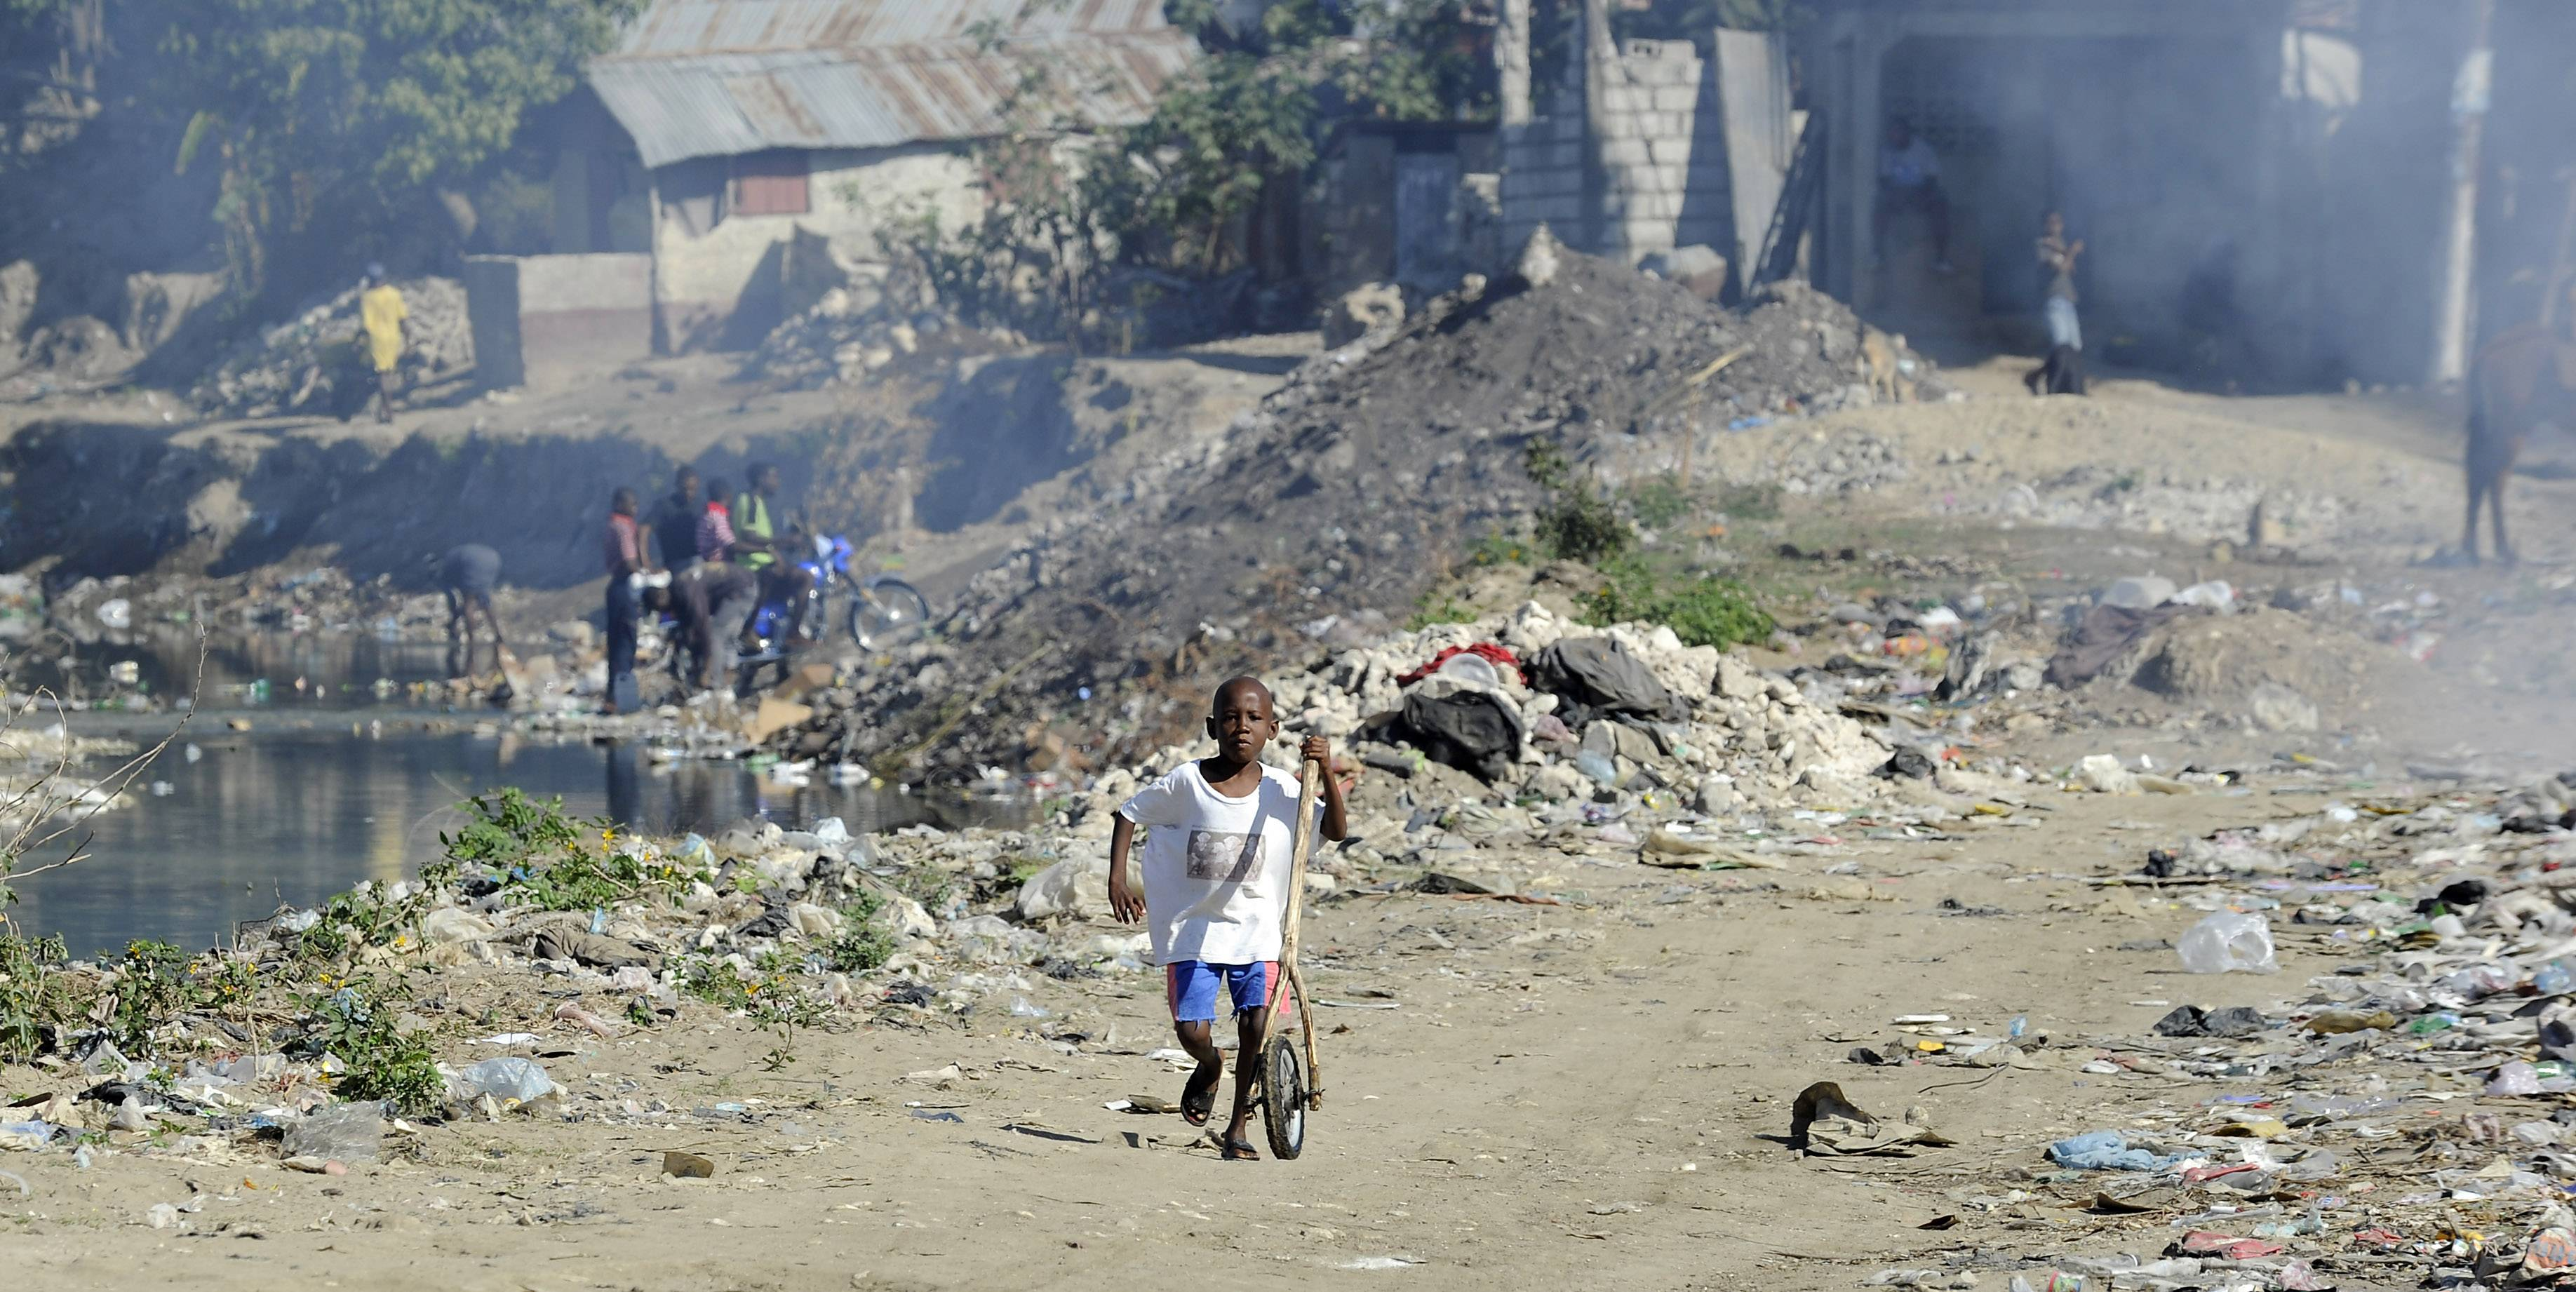 A young Haitian boy plays with a hoop and stick in the trash dump located outside the Jacmel, Haiti.